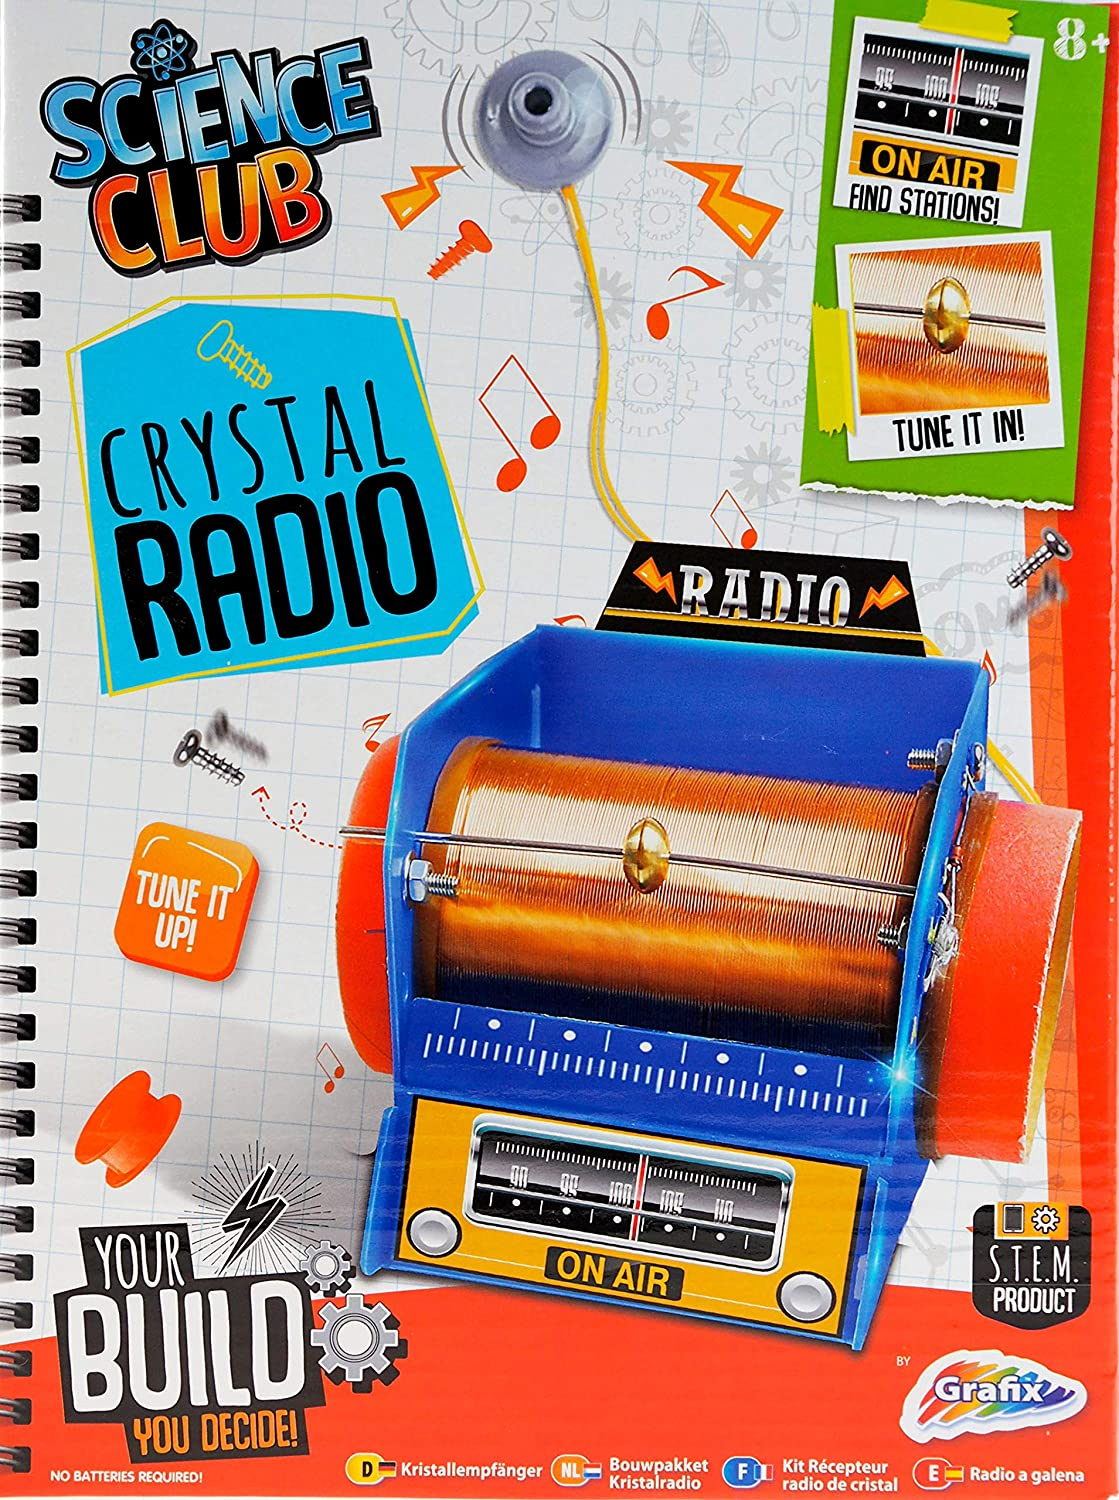 Science Club Crystal Radio Office Products Basic Electronics Toys For Kids Snap Circuits Jr Sc 100